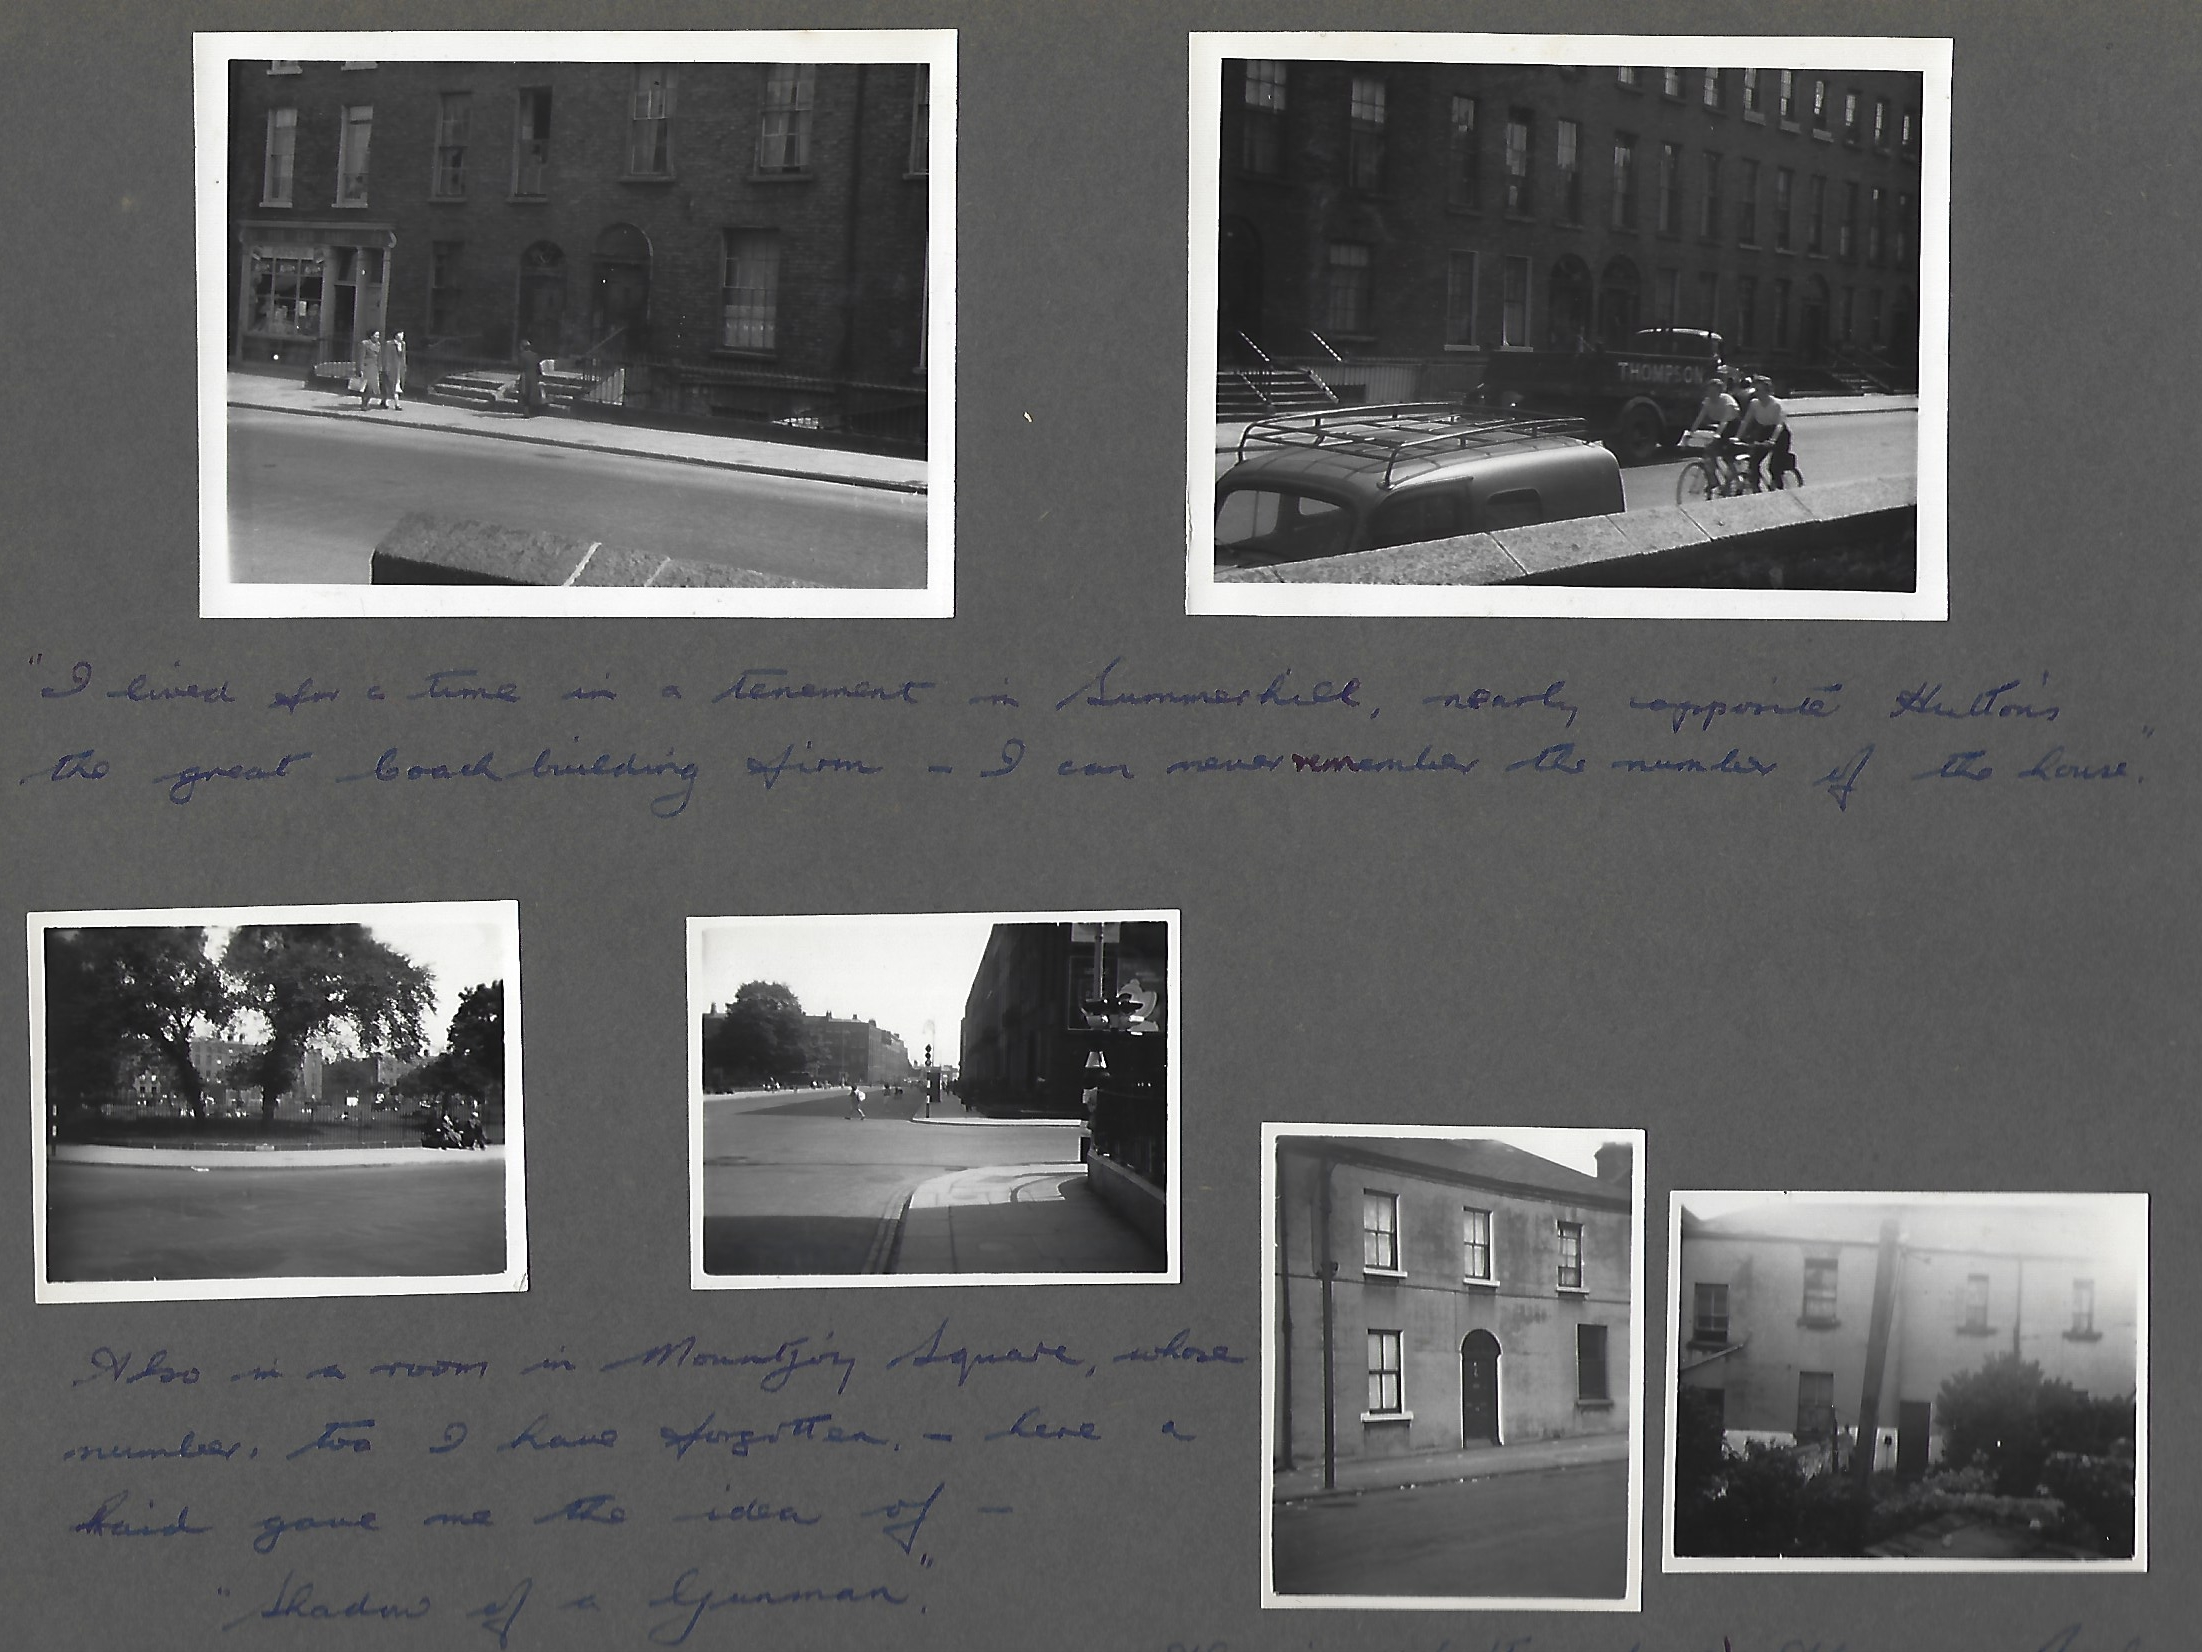 David Butcher's photo album of Dublin 1956 p. 2